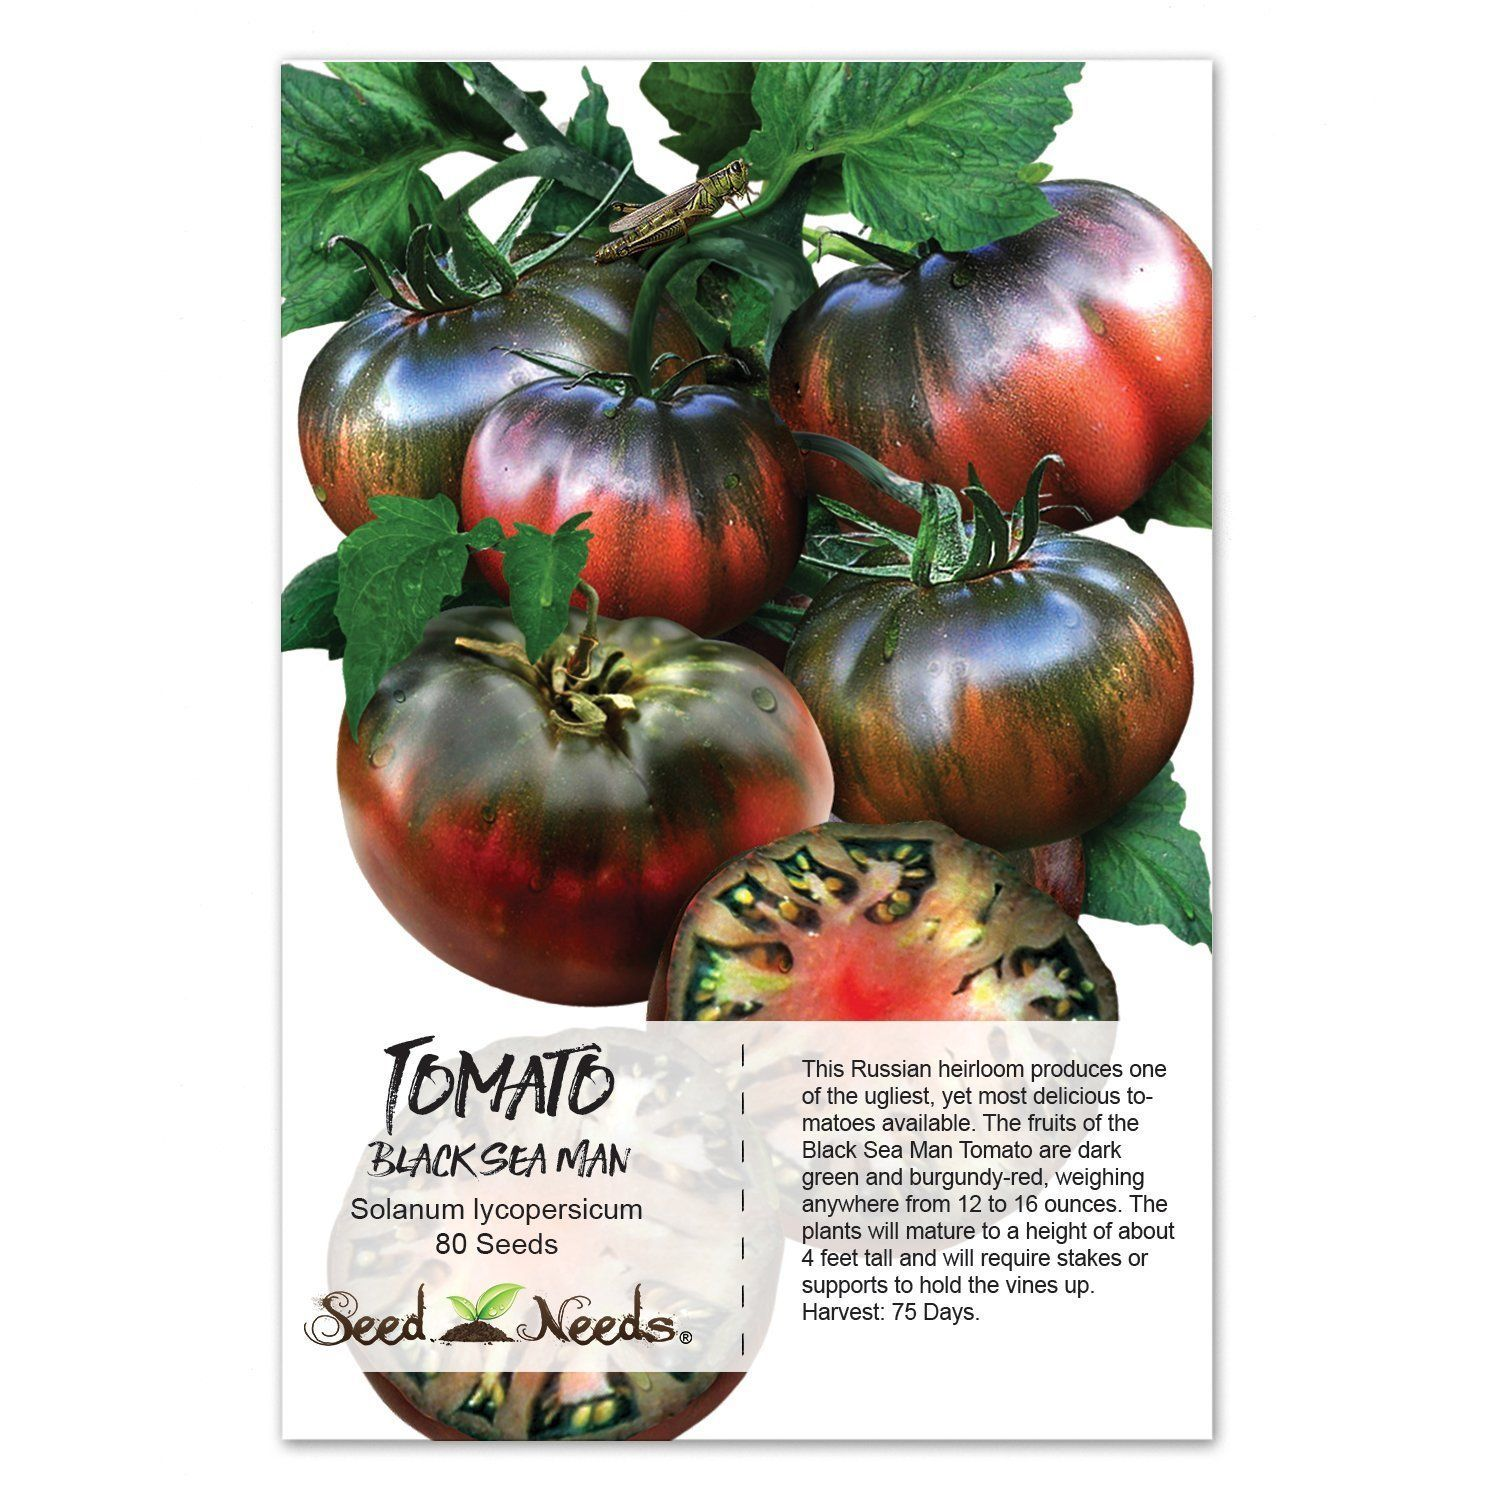 Spice reccomend Days for tomato seed to mature